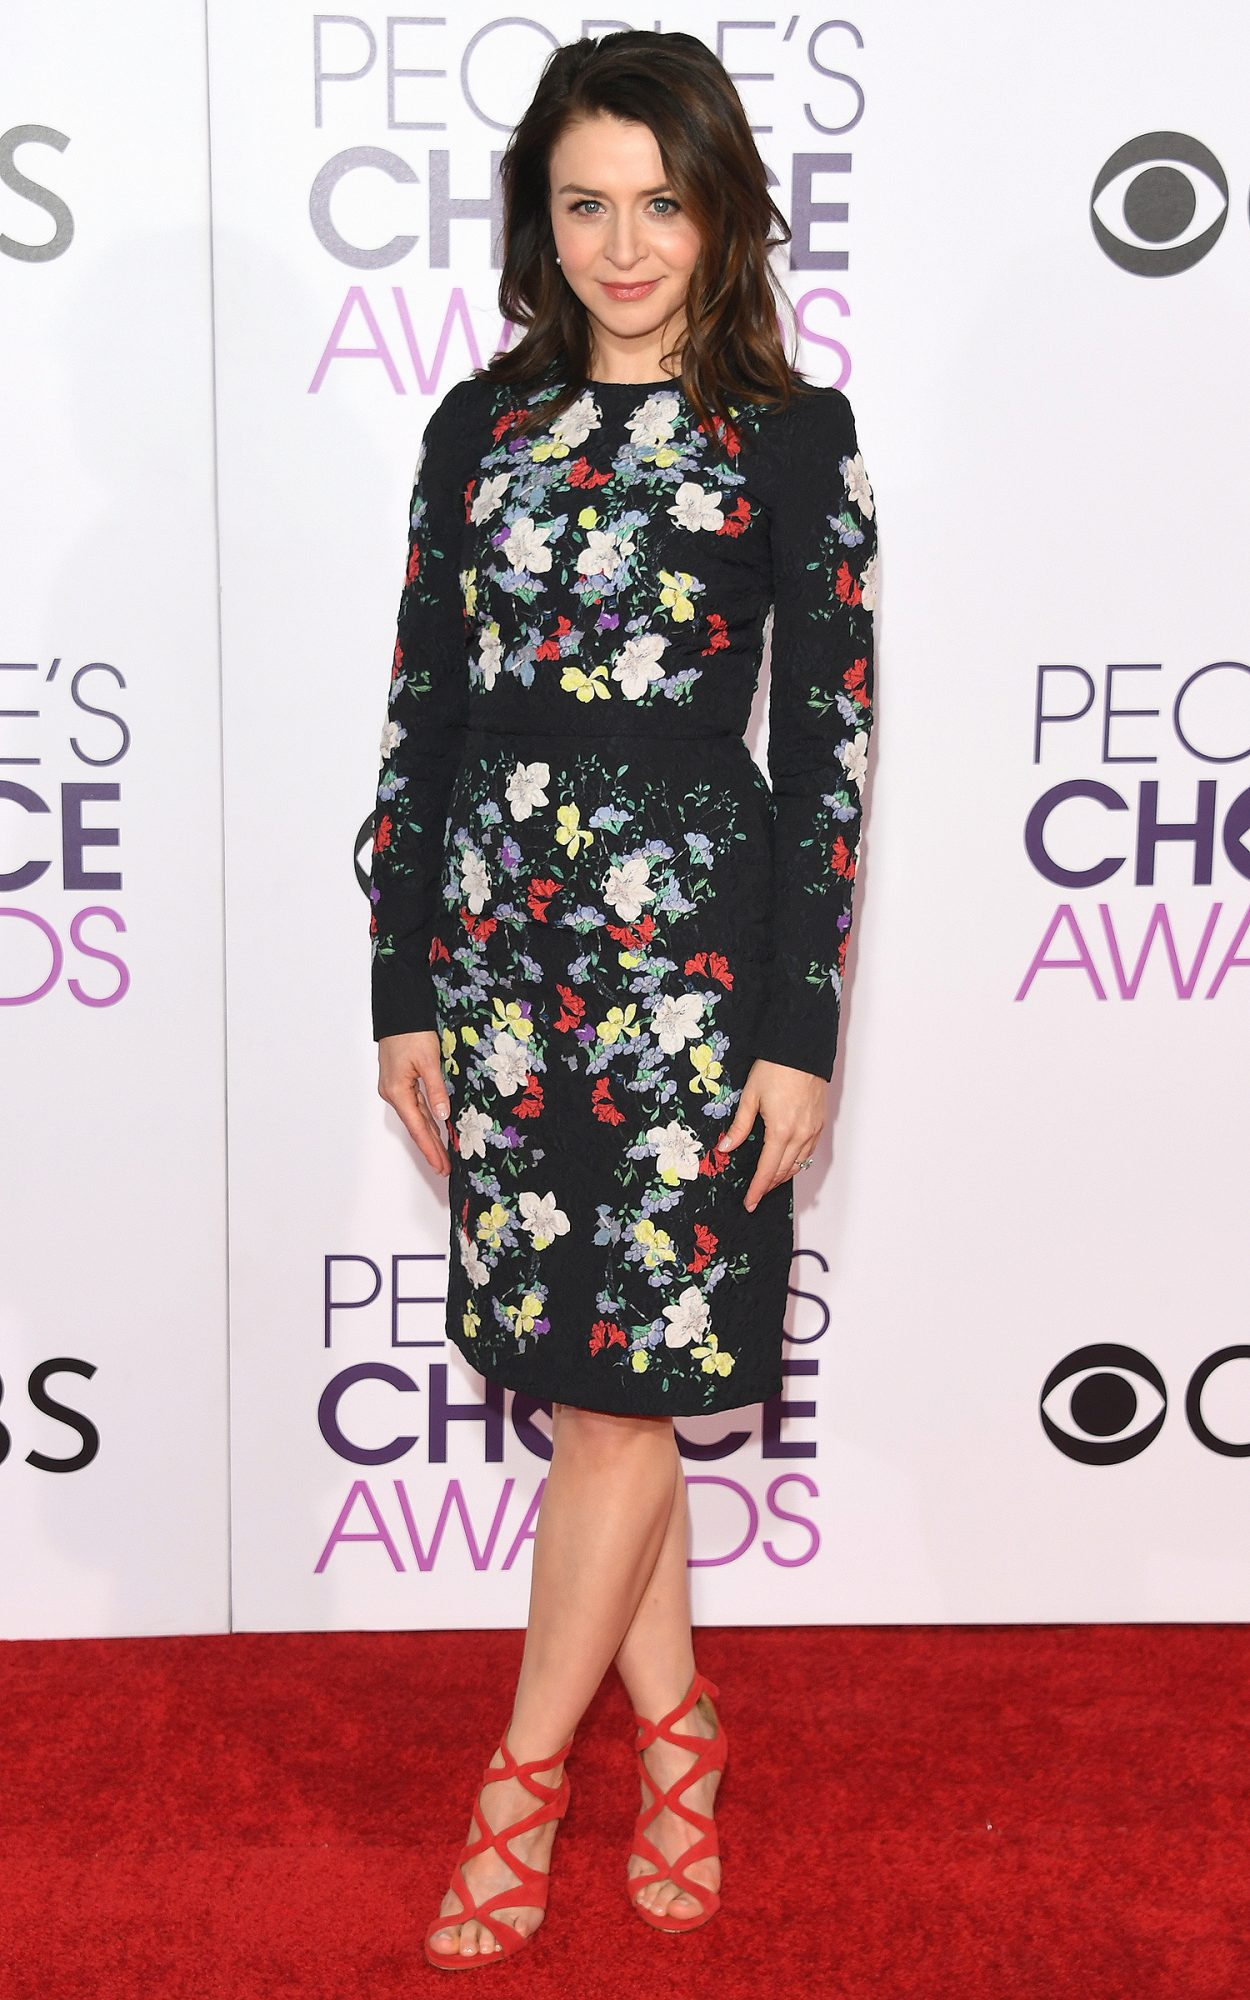 People's Choice Awards 2017 - Arrivals